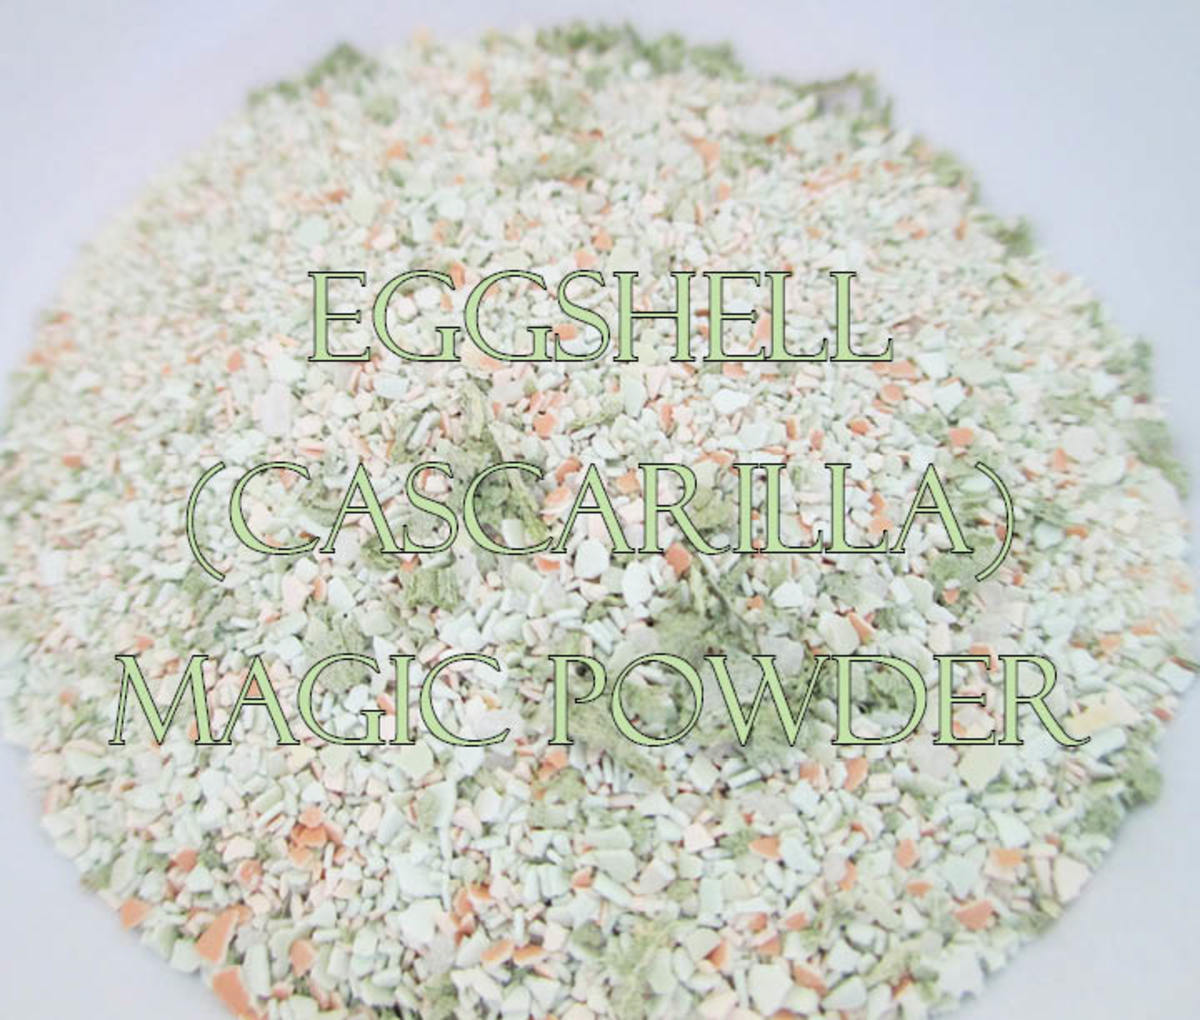 Eggshell (Cascarilla) Magic Powder: For Luck & Protection.